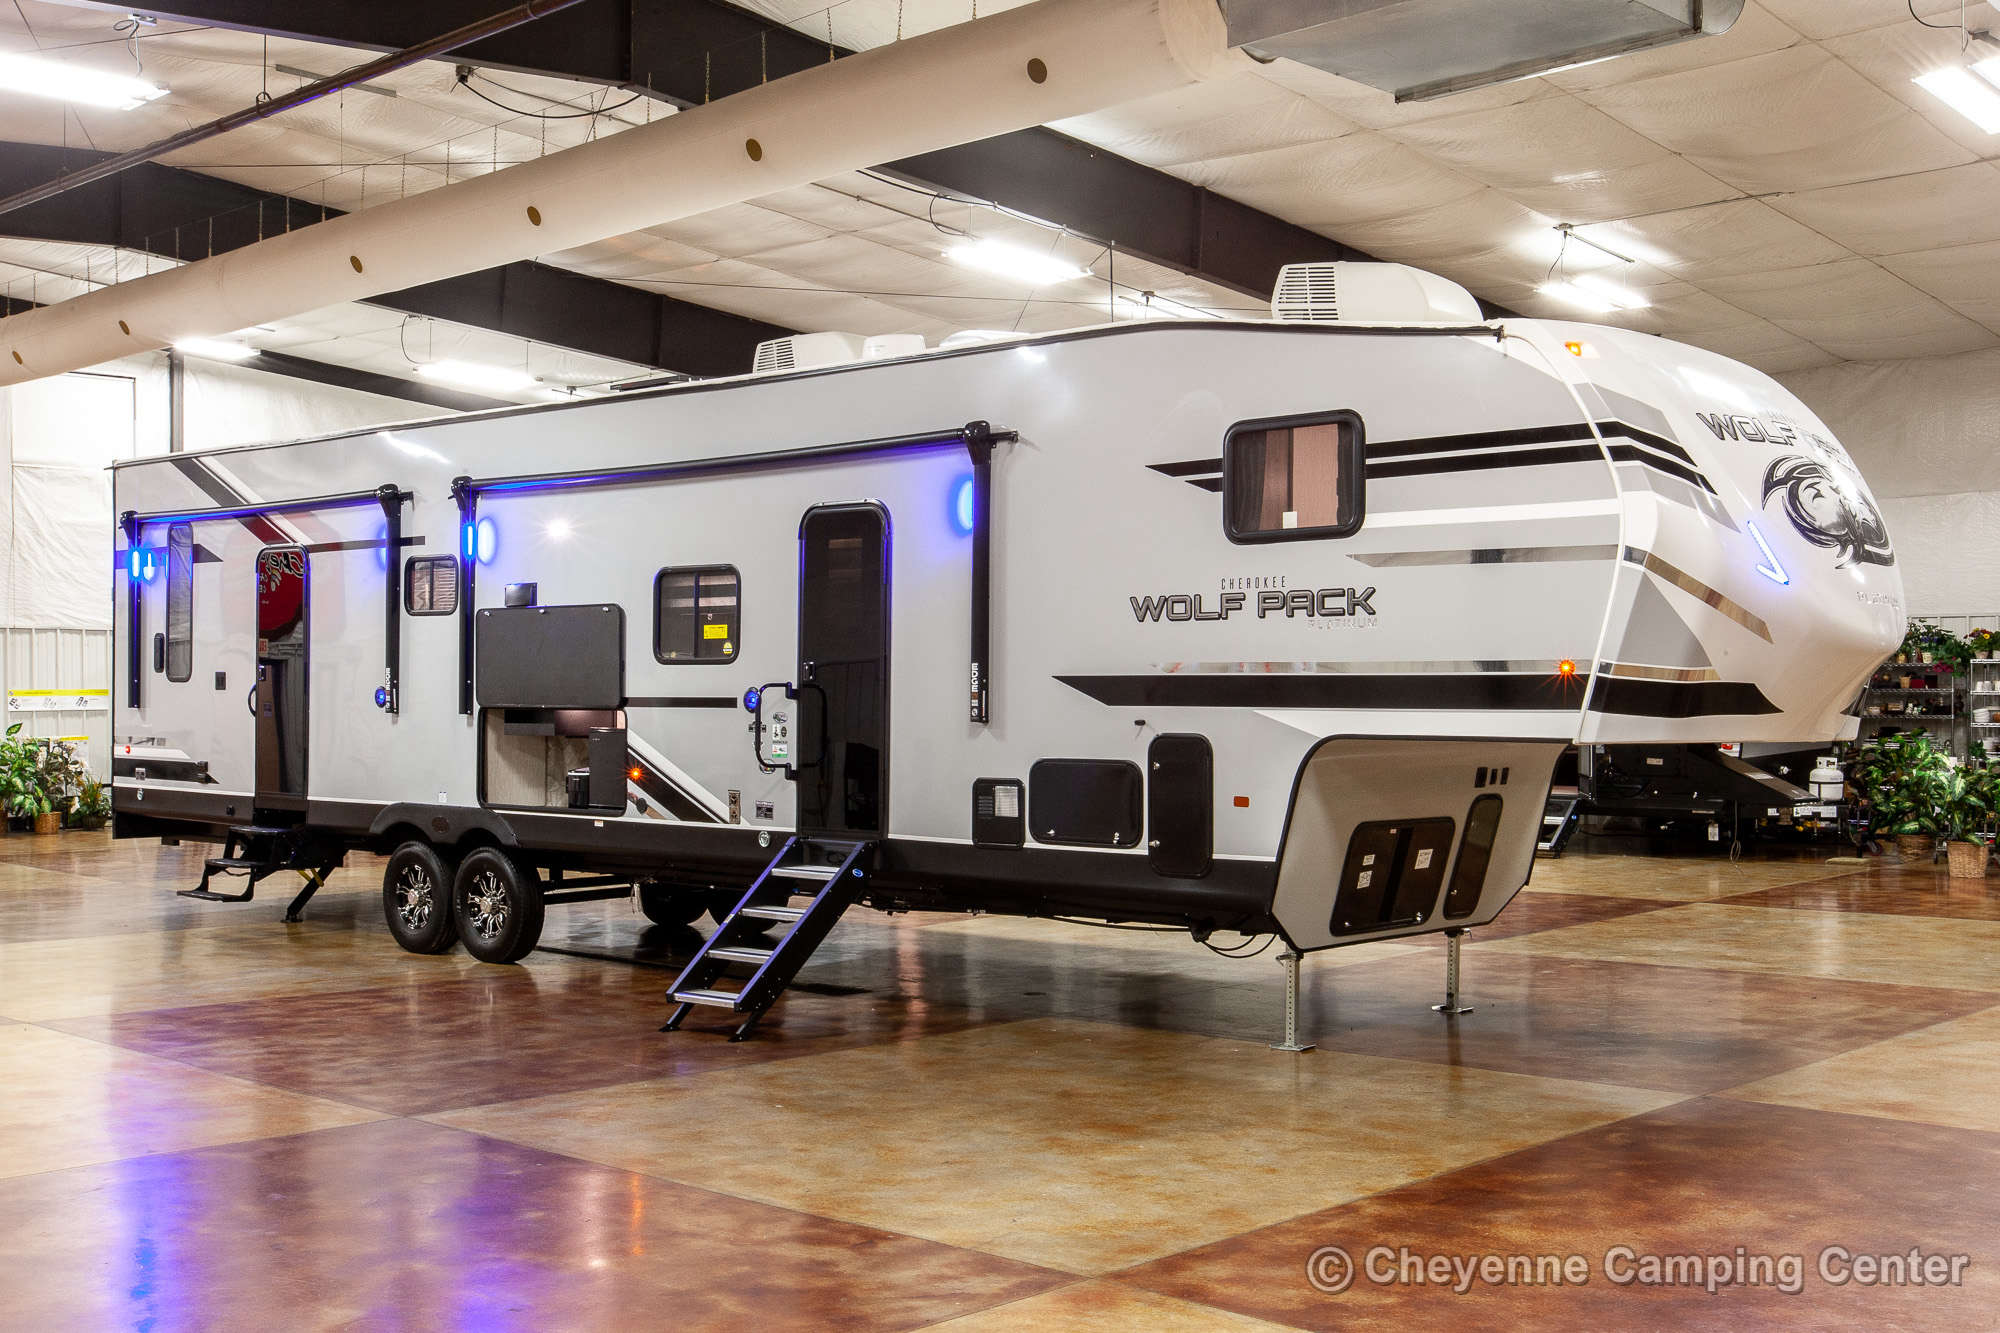 2021 Forest River Cherokee Wolf Pack 365PACK16 Bunkhouse Toy Hauler Fifth Wheel Exterior Image